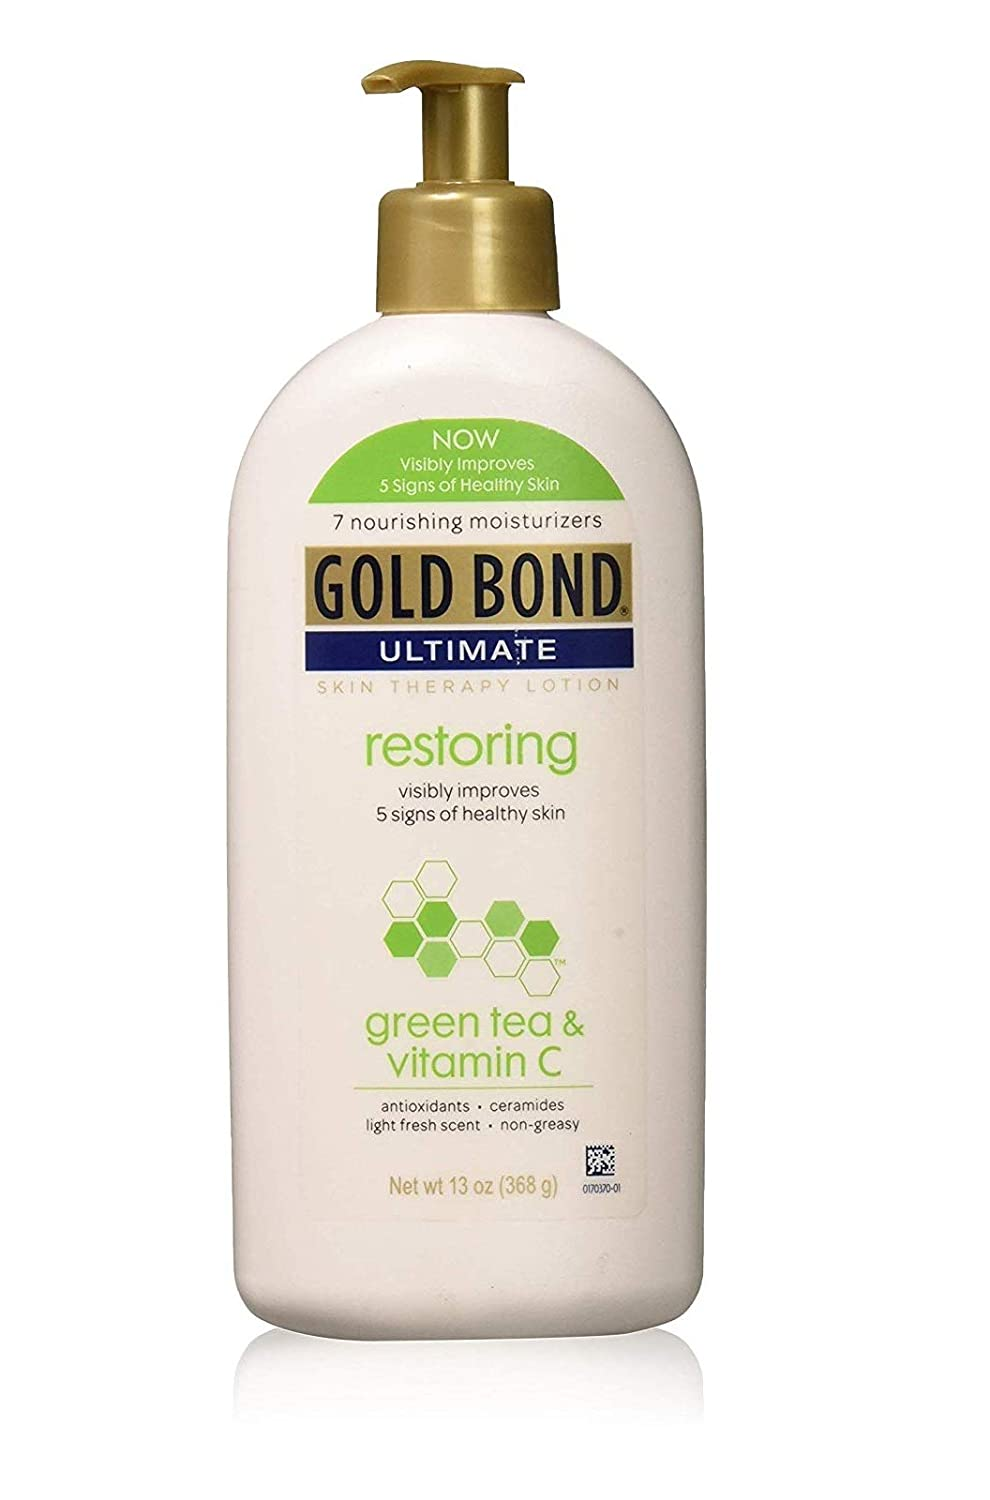 Gold Bond Ultimate Restoring Lotion, with Vitamin C and Green Tea